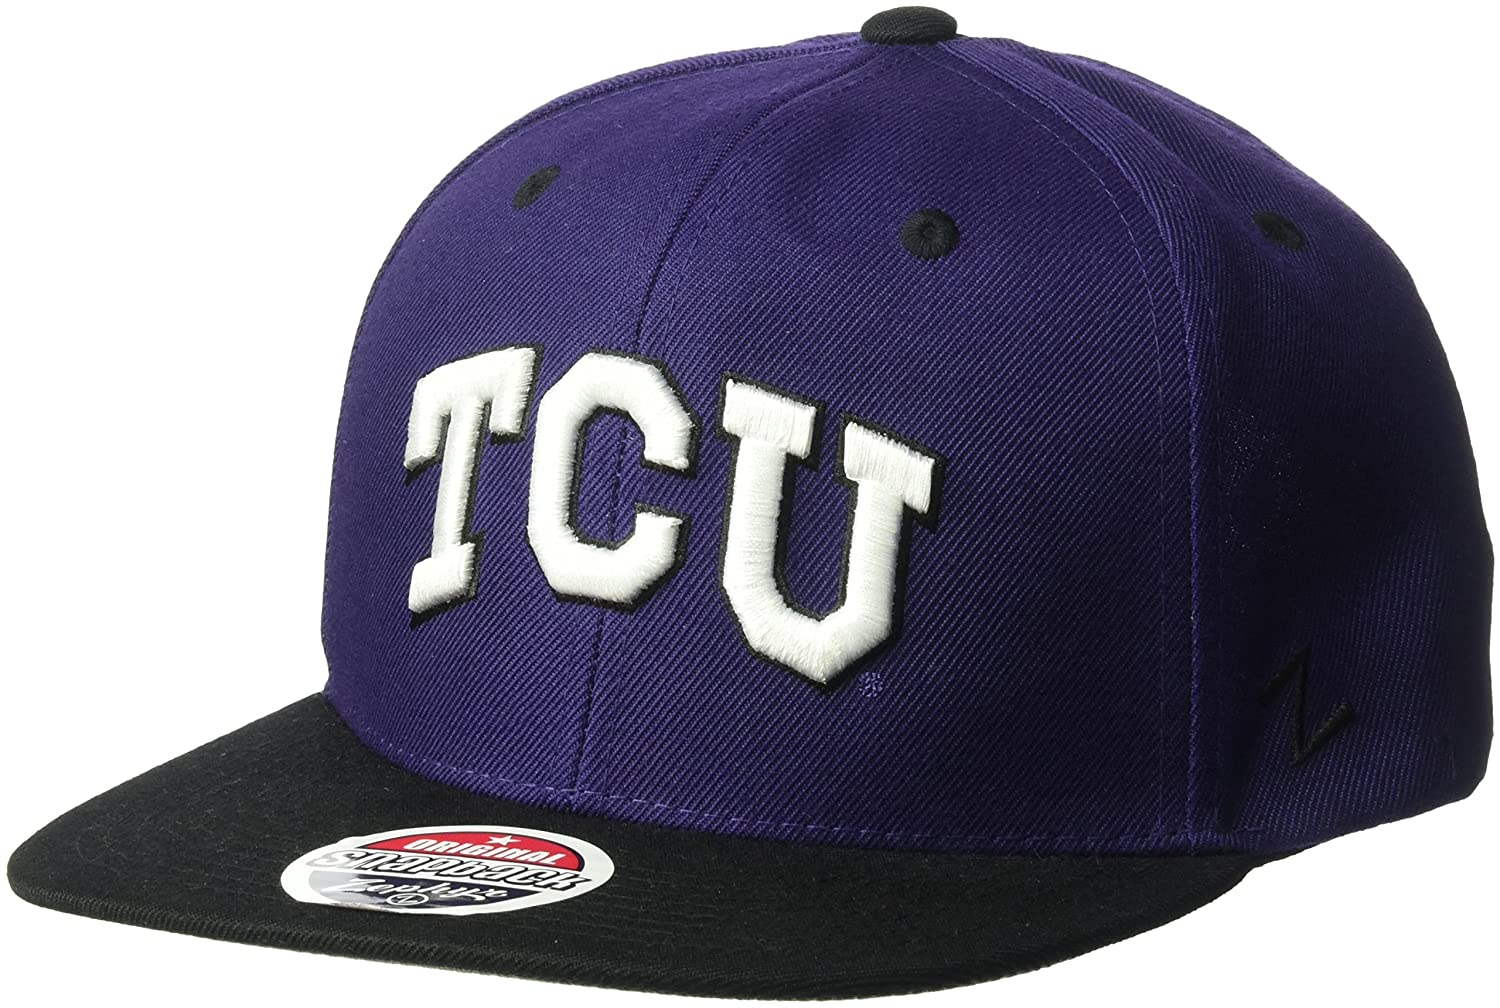 c19b30e4 ... purchase zhats ncaa tcu horned frogs mens z11 snapback hat adjustable  size team color 1179f 6b68a